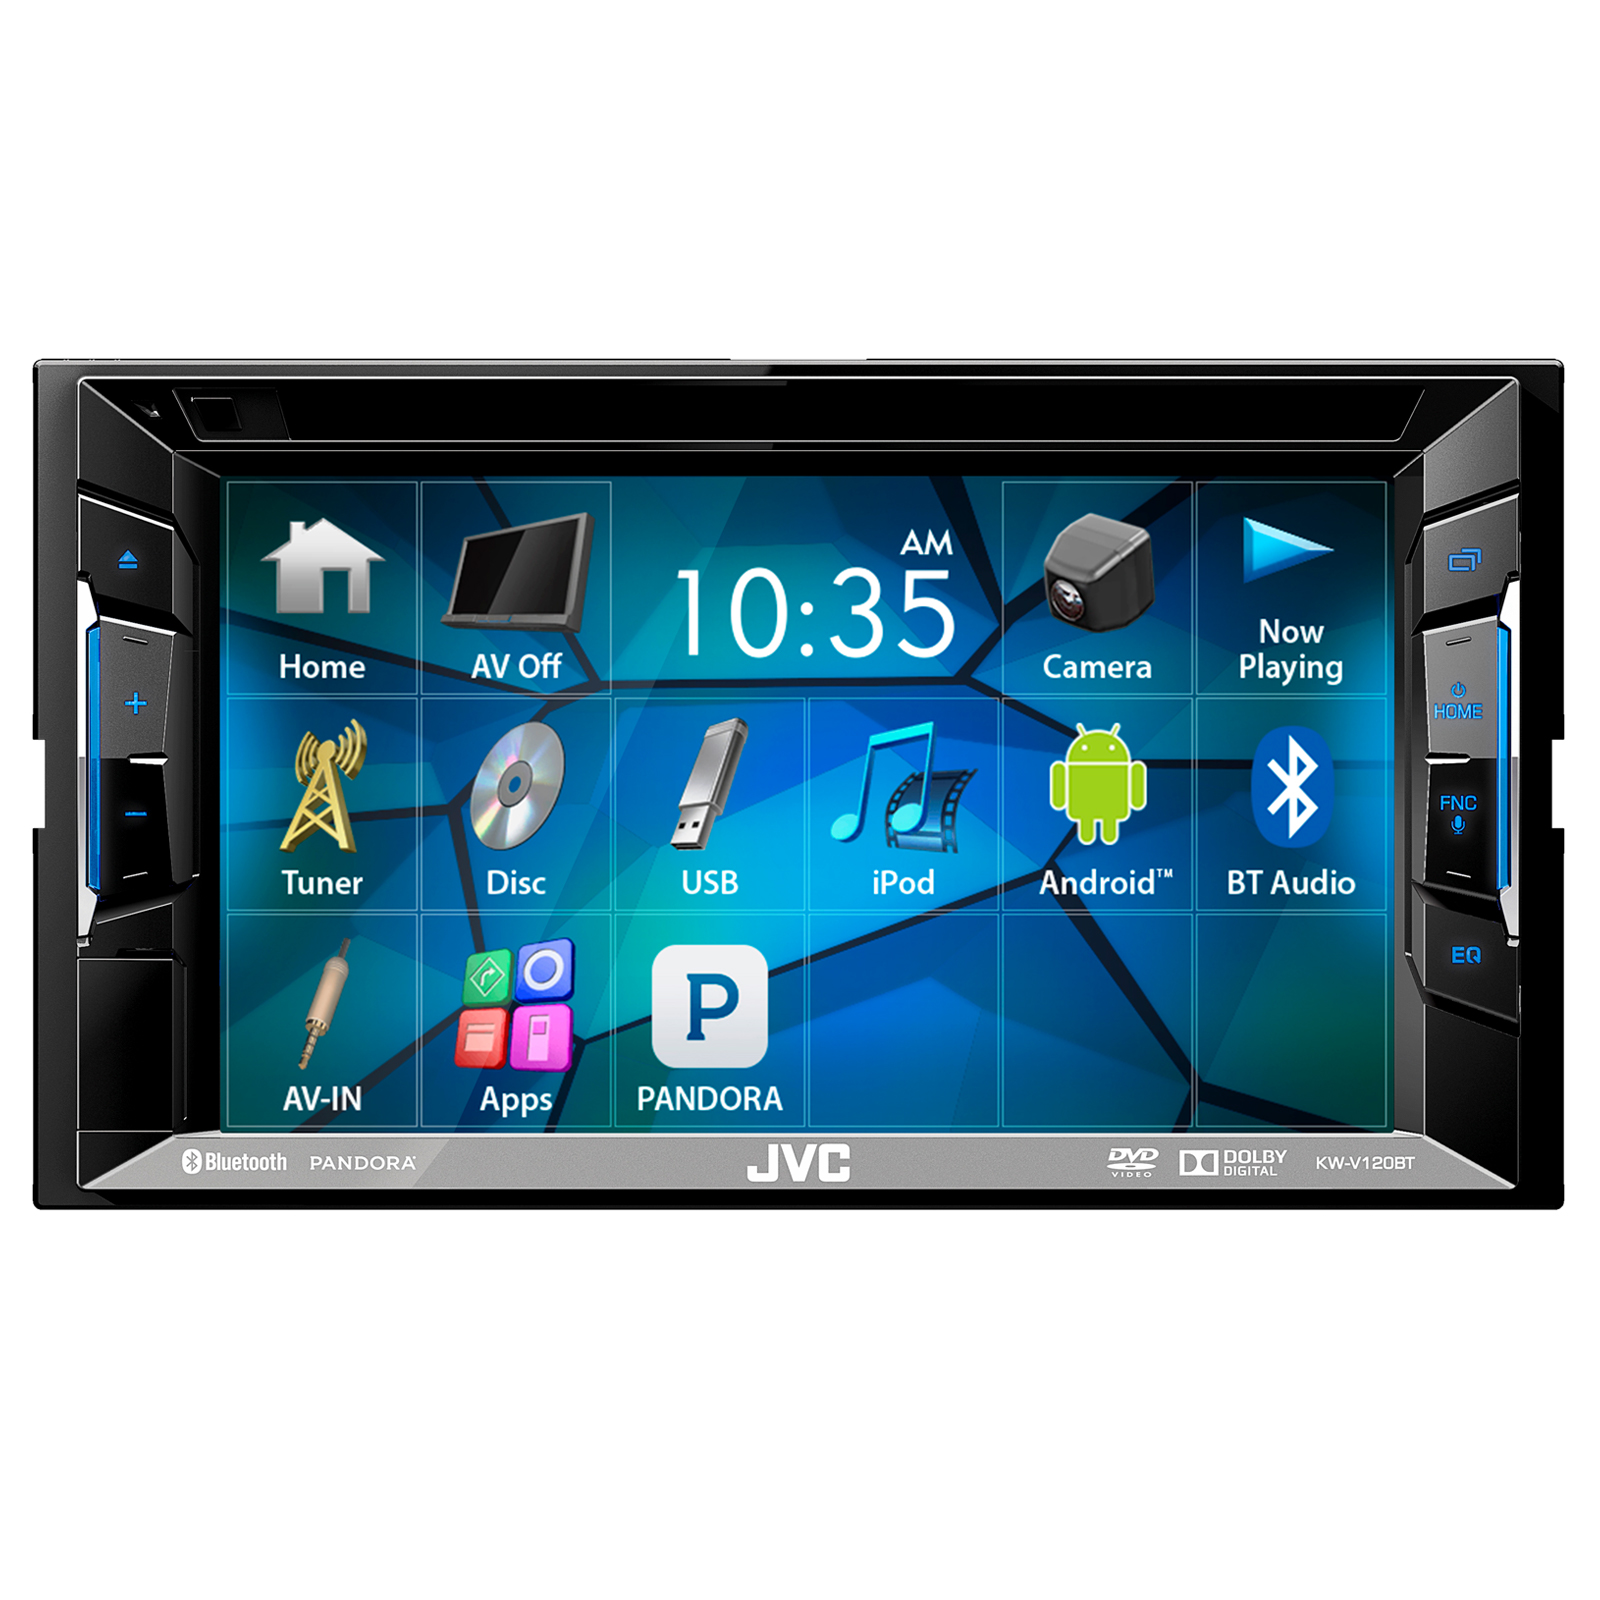 hight resolution of jvc kwv140bt 6 2 touch screen car cd dvd usb bluetooth stereo receiver bundle combo with kenwood rearview wide angle view backup camera enrock 22 am fm